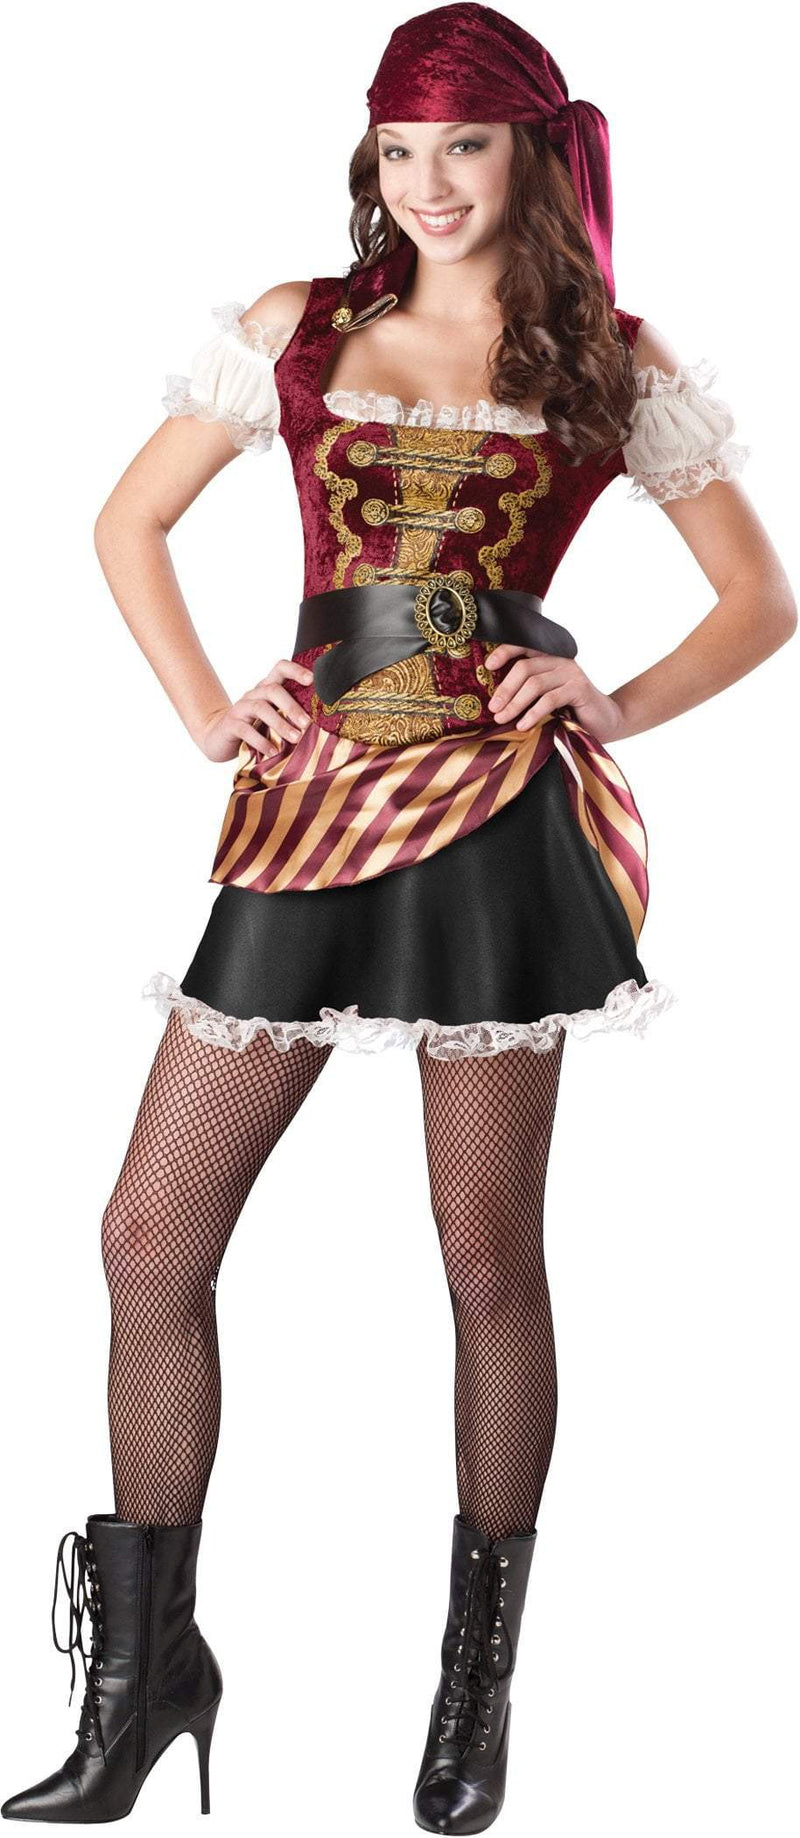 InCharacter Costumes LARGE (9-11) Teen Girls Pirate Babe Costume